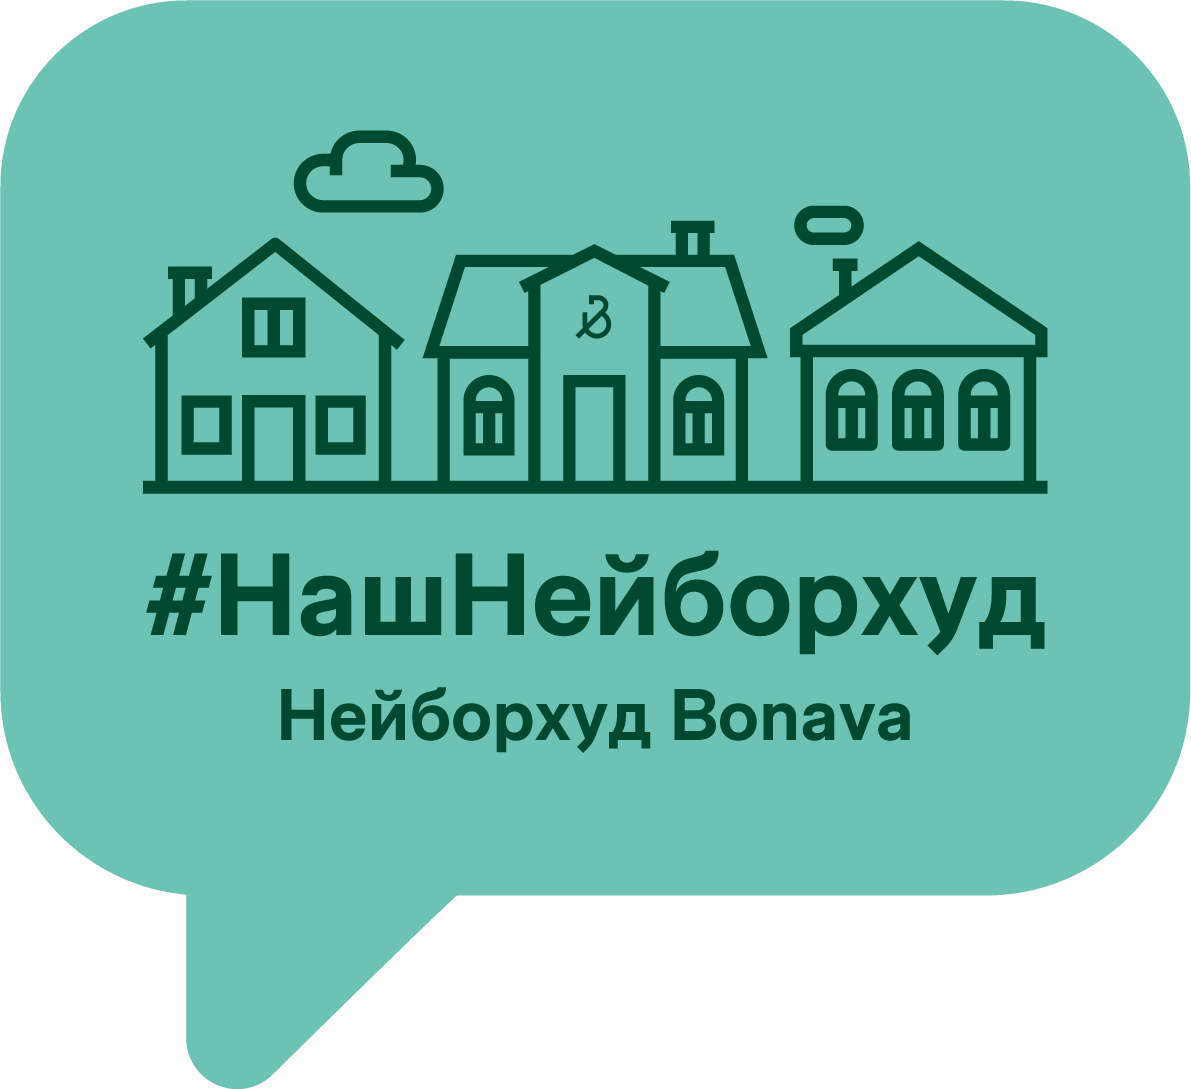 siteassets/img/blog/password-neighborhood/bonava_stiker_w140-1.png